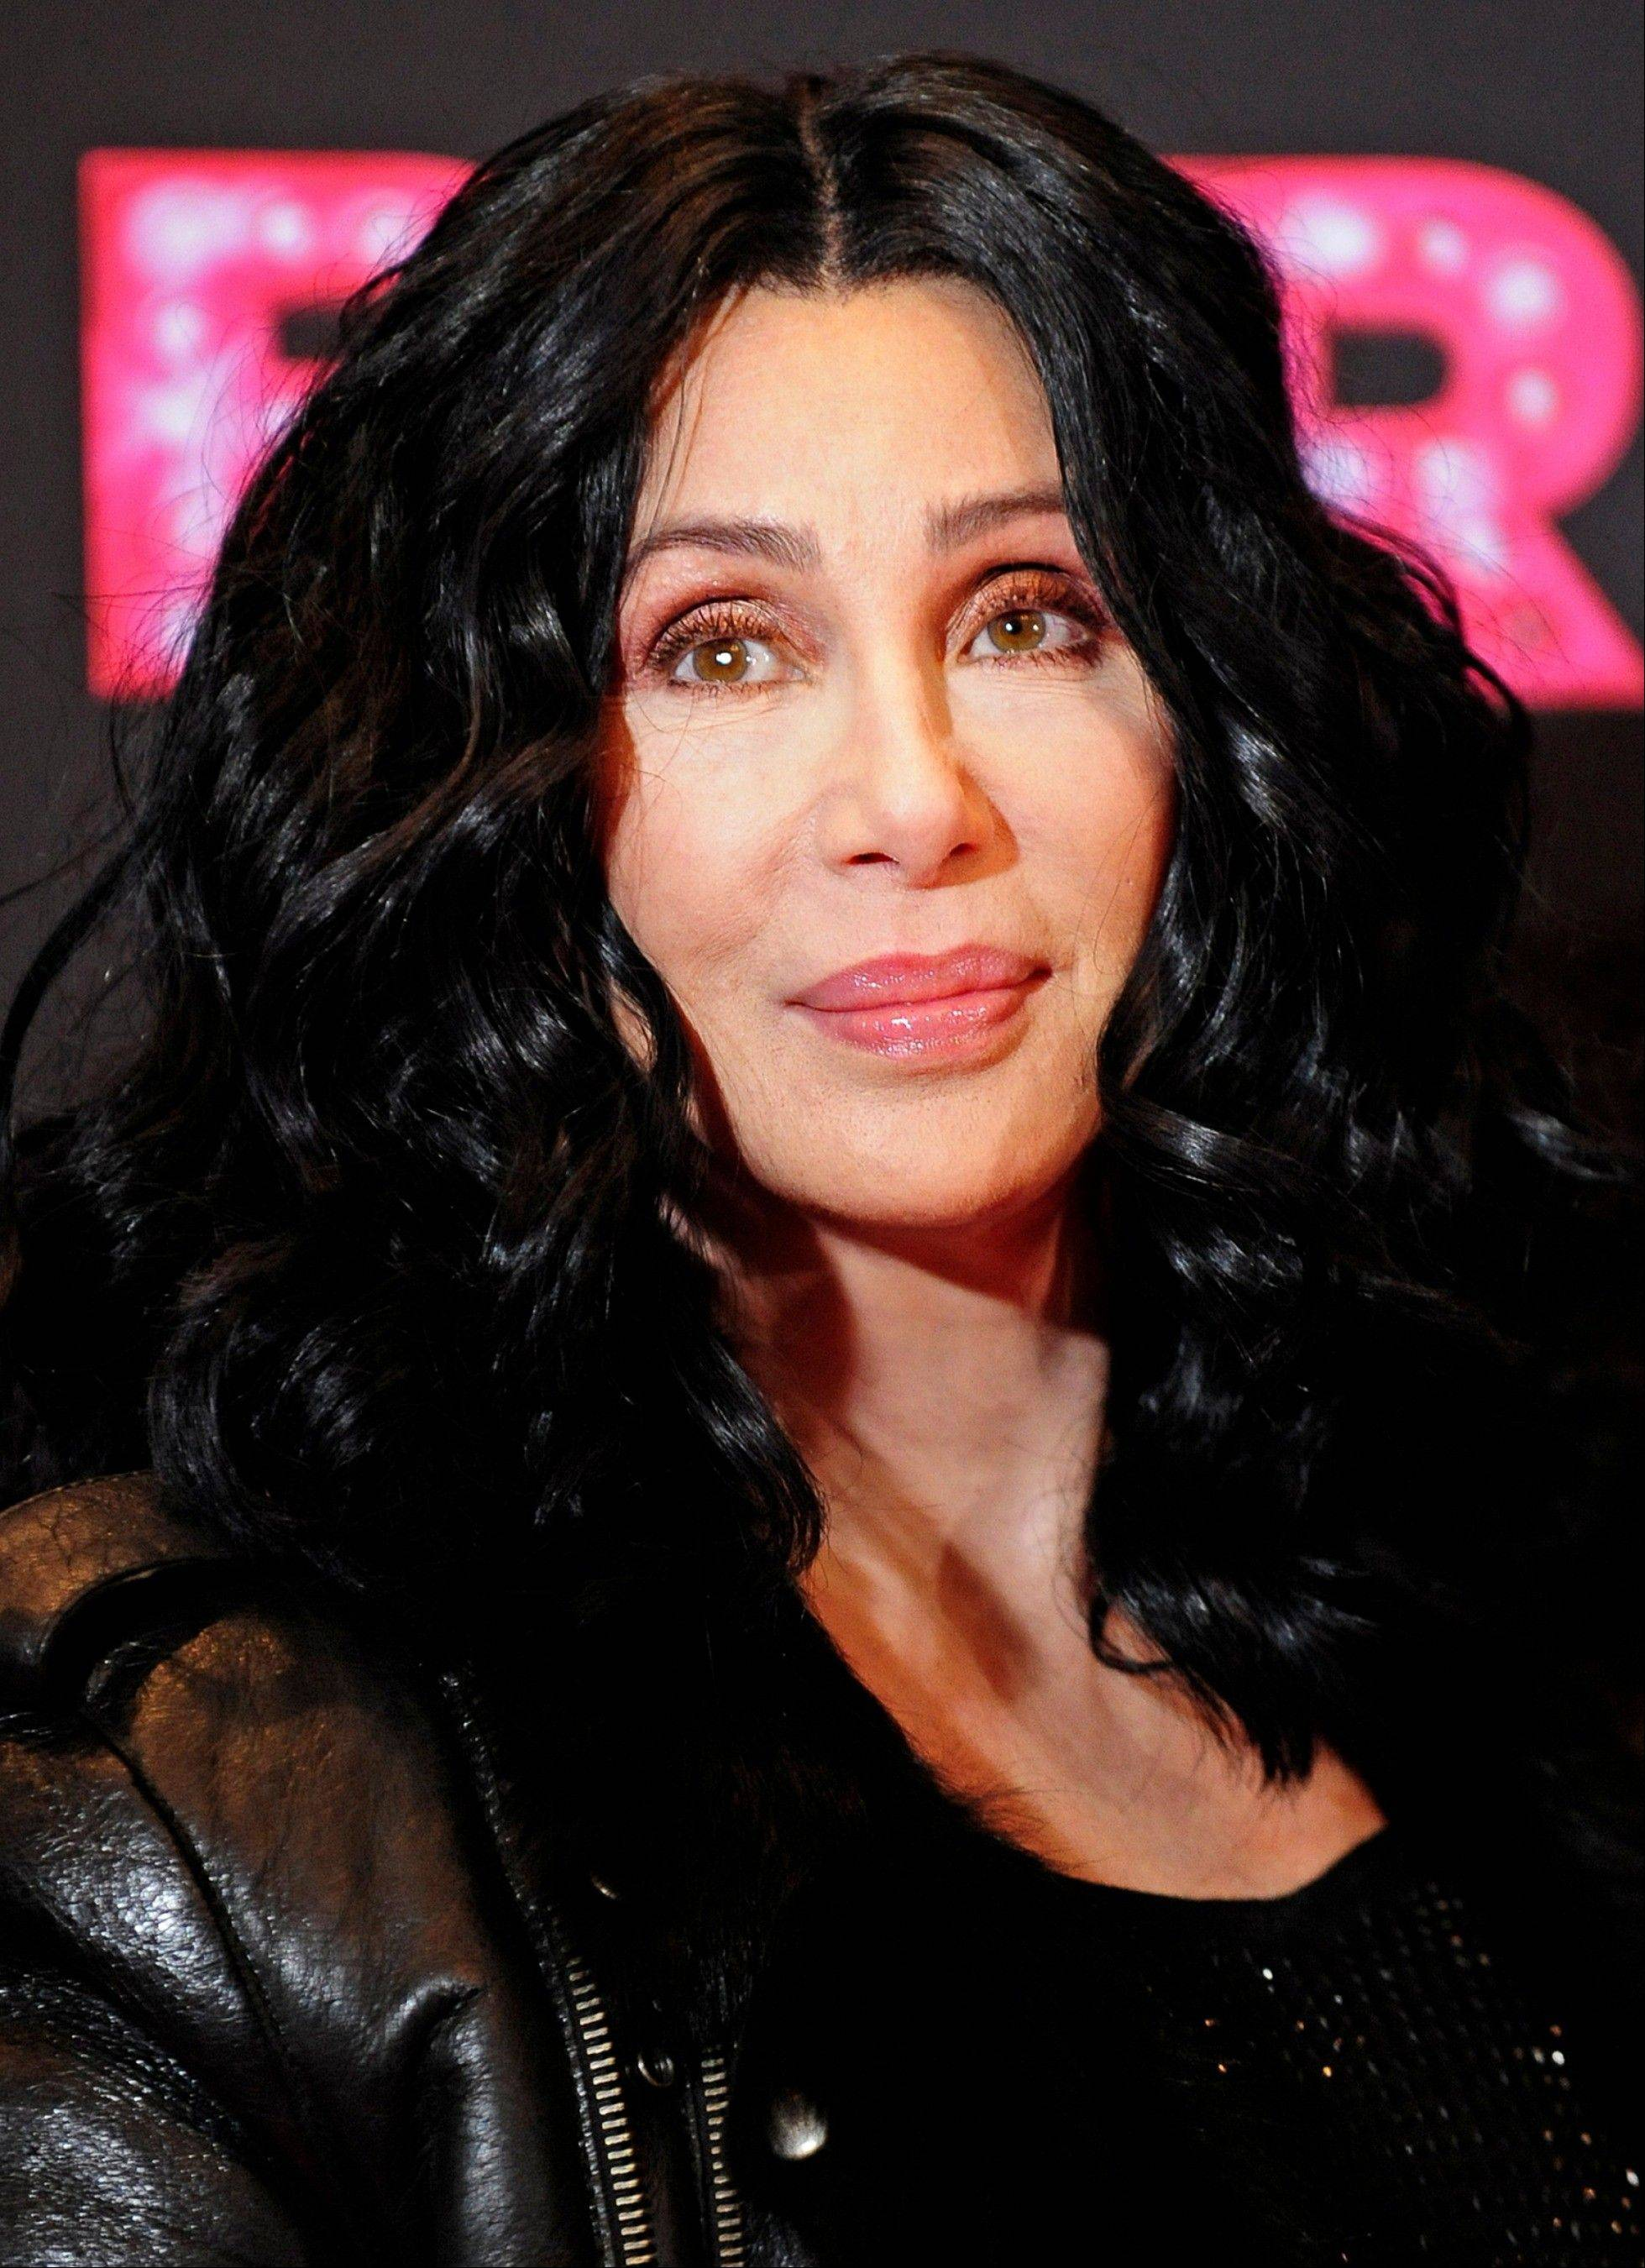 Cher's tour brings the singer to Rosemont's Allstate Arena on June 7.